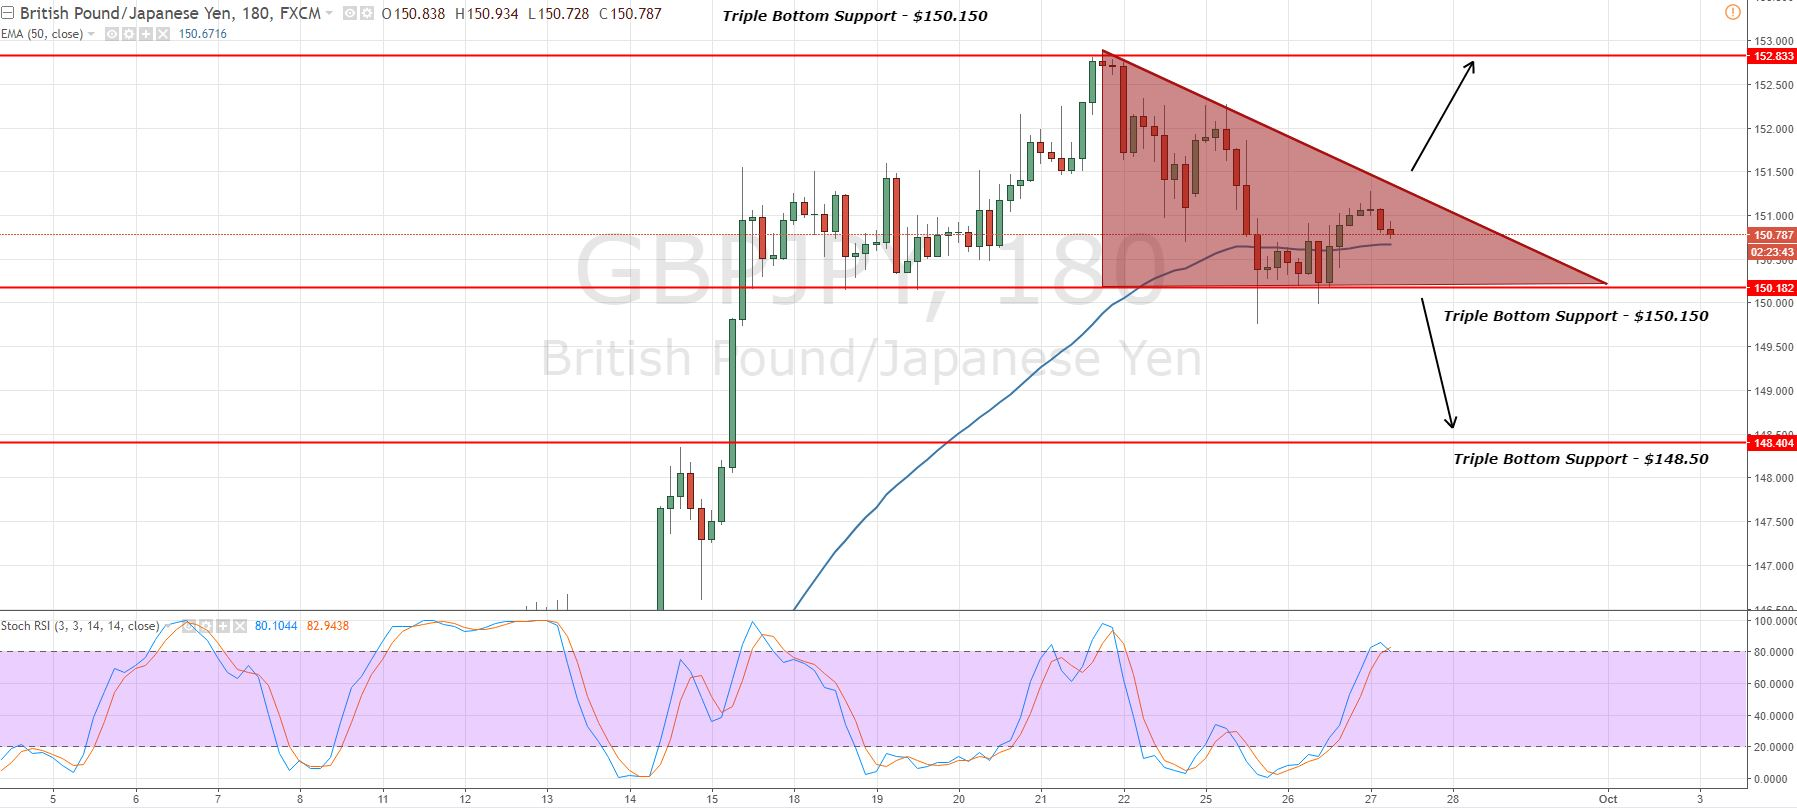 GBPJPY - Descending Triangle Pattern - 3 Hour Chart